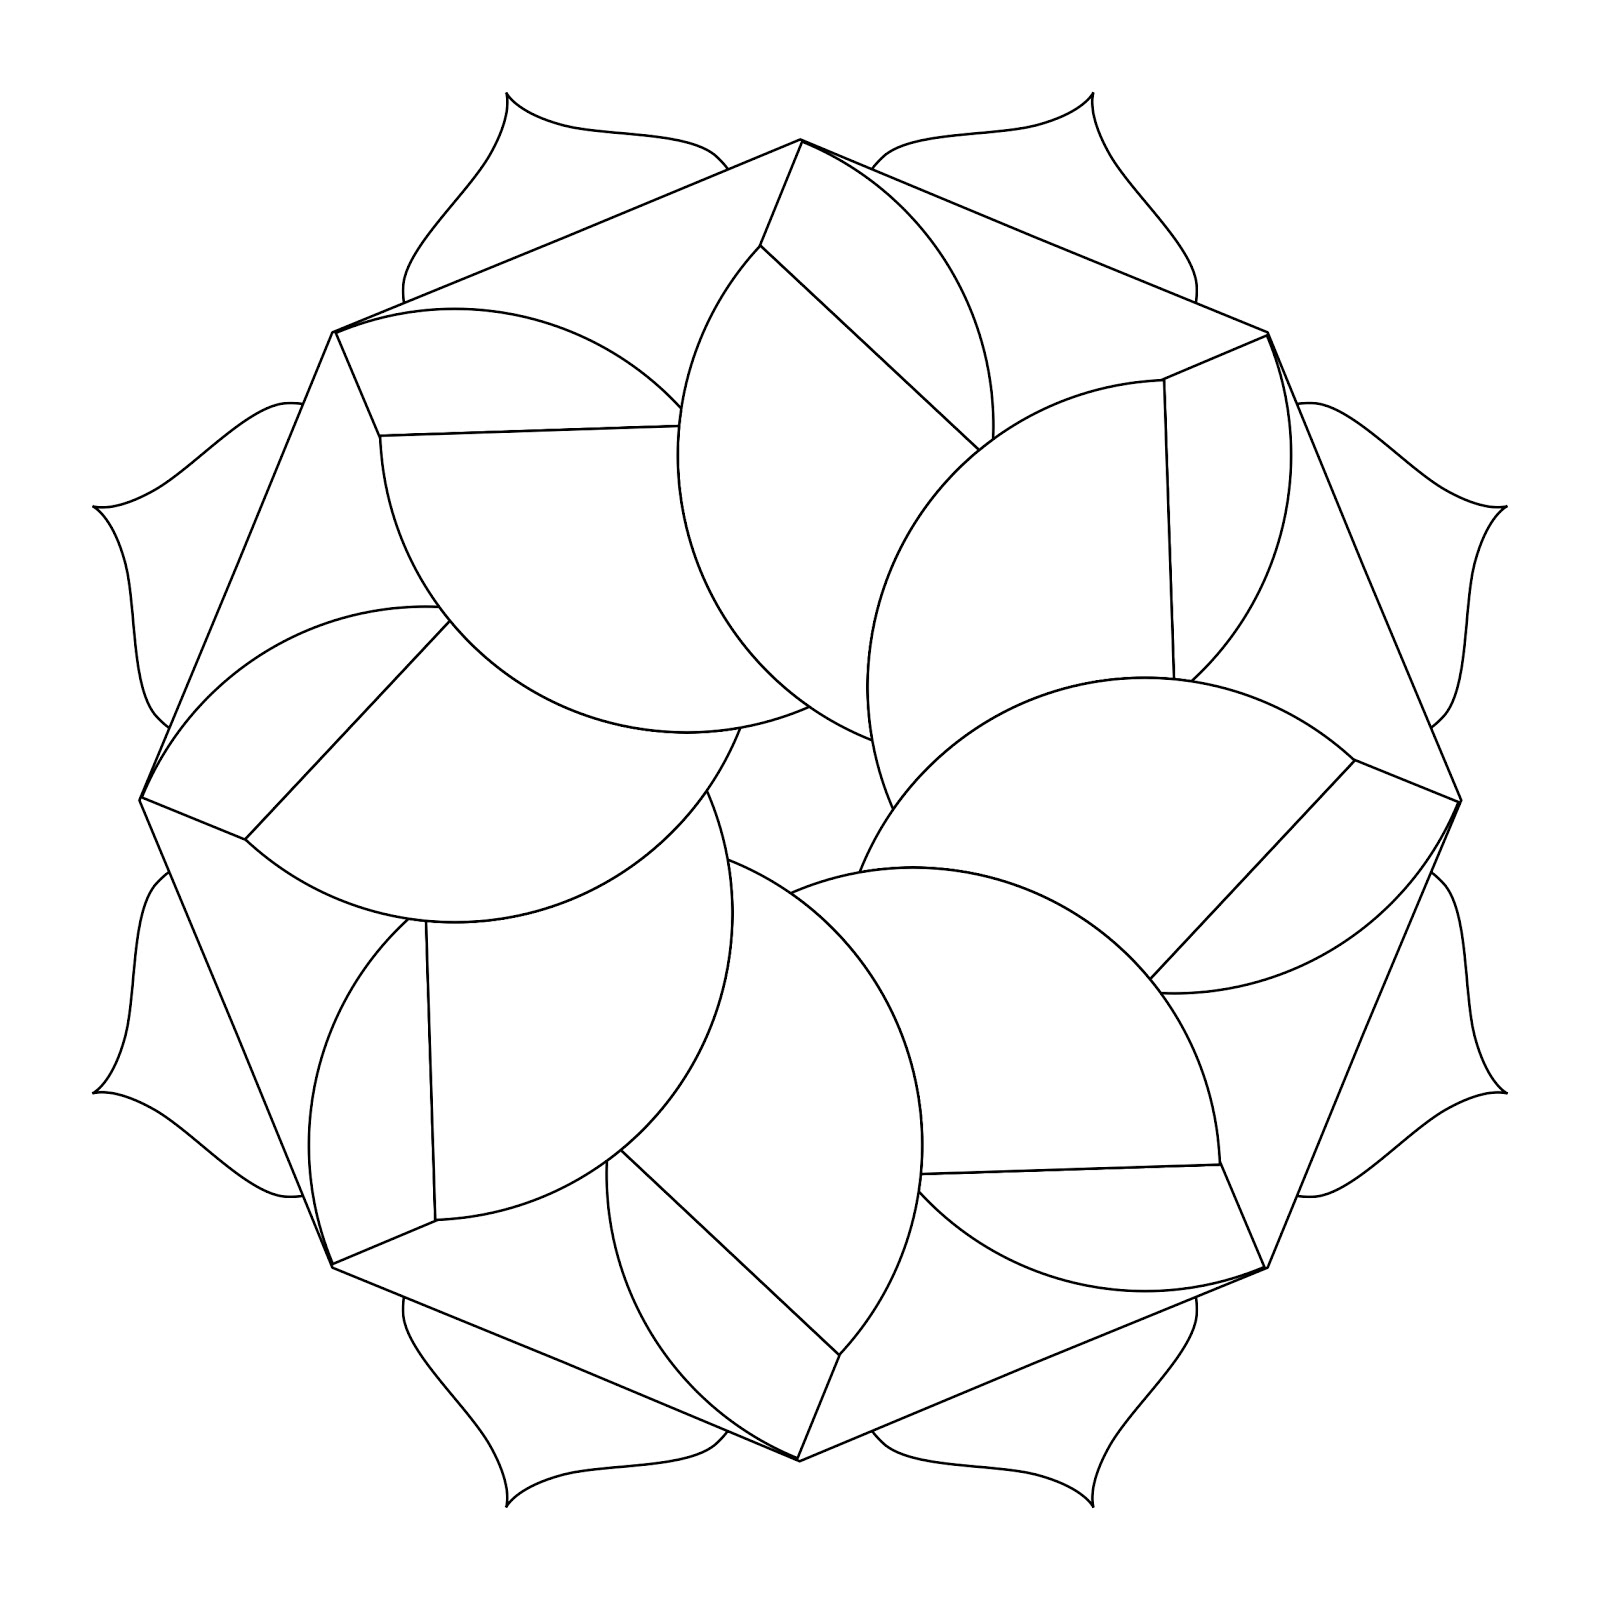 1000 images about mosaic on pinterest mosaic patterns for How to draw mosaic patterns